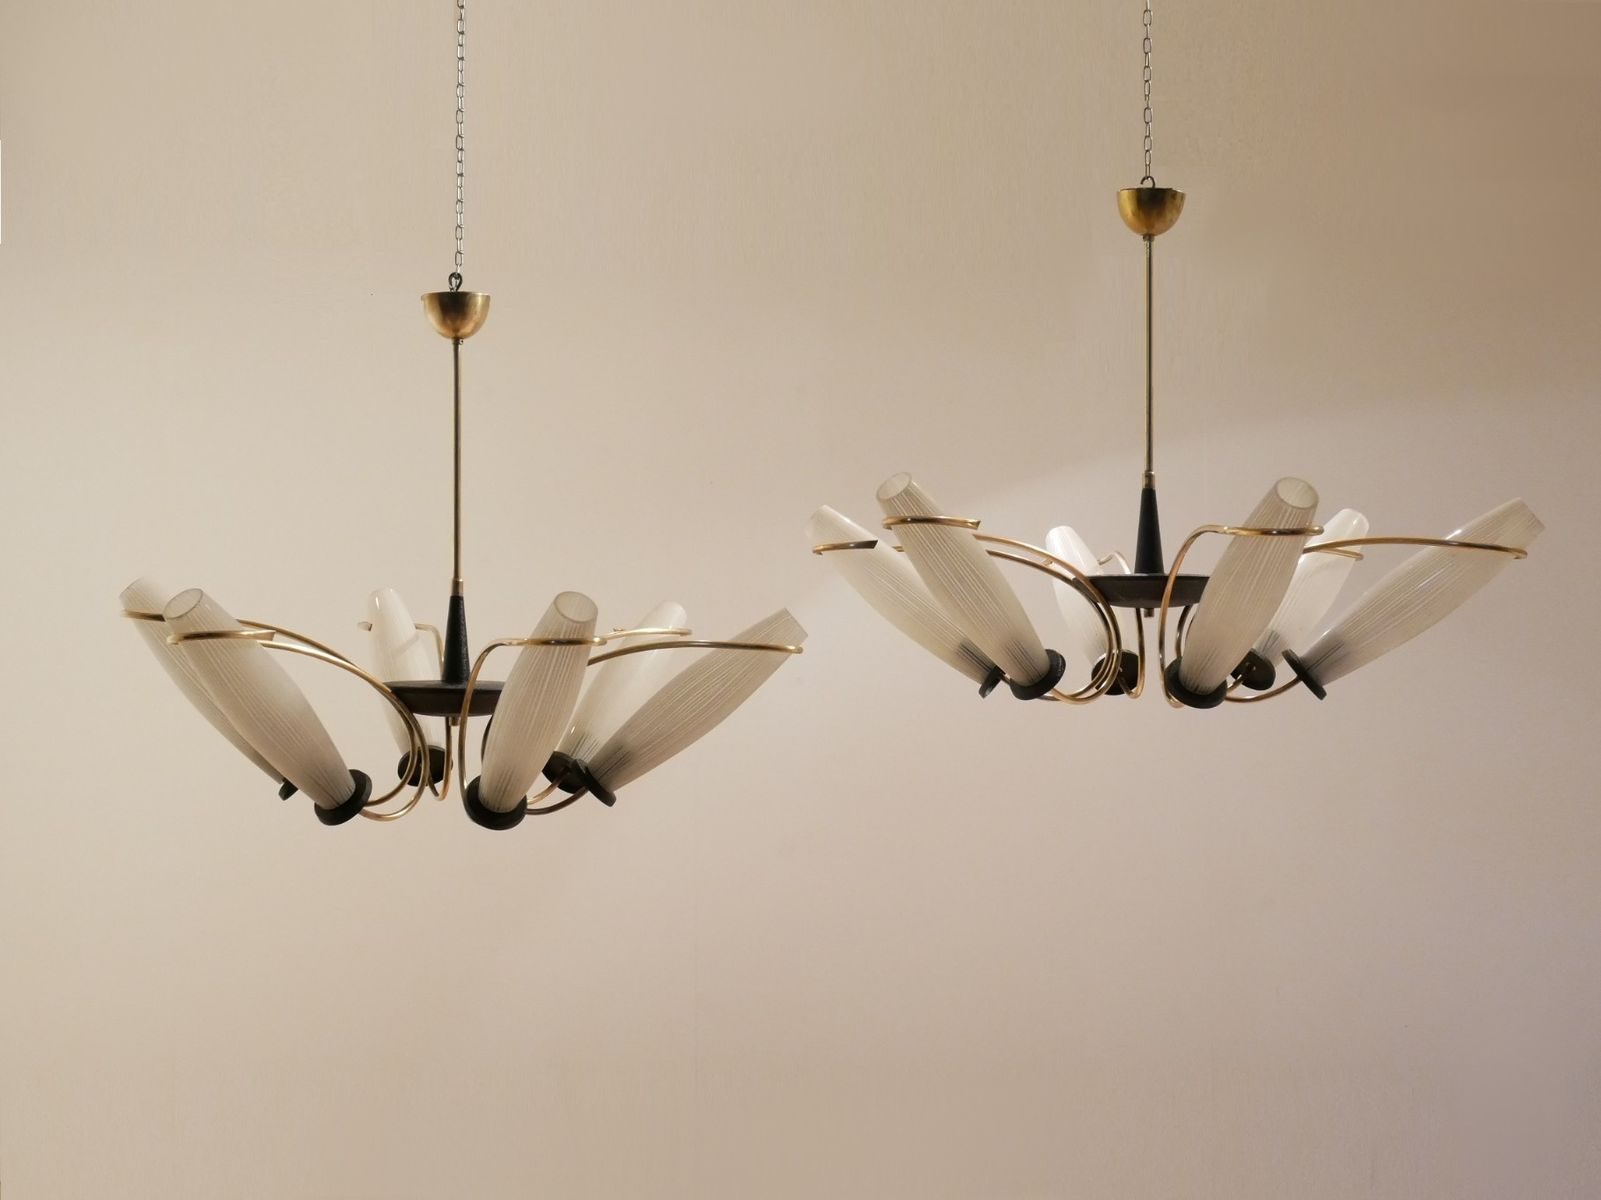 Brass etched glass chandeliers 1950s set of 2 for sale at pamono mozeypictures Image collections